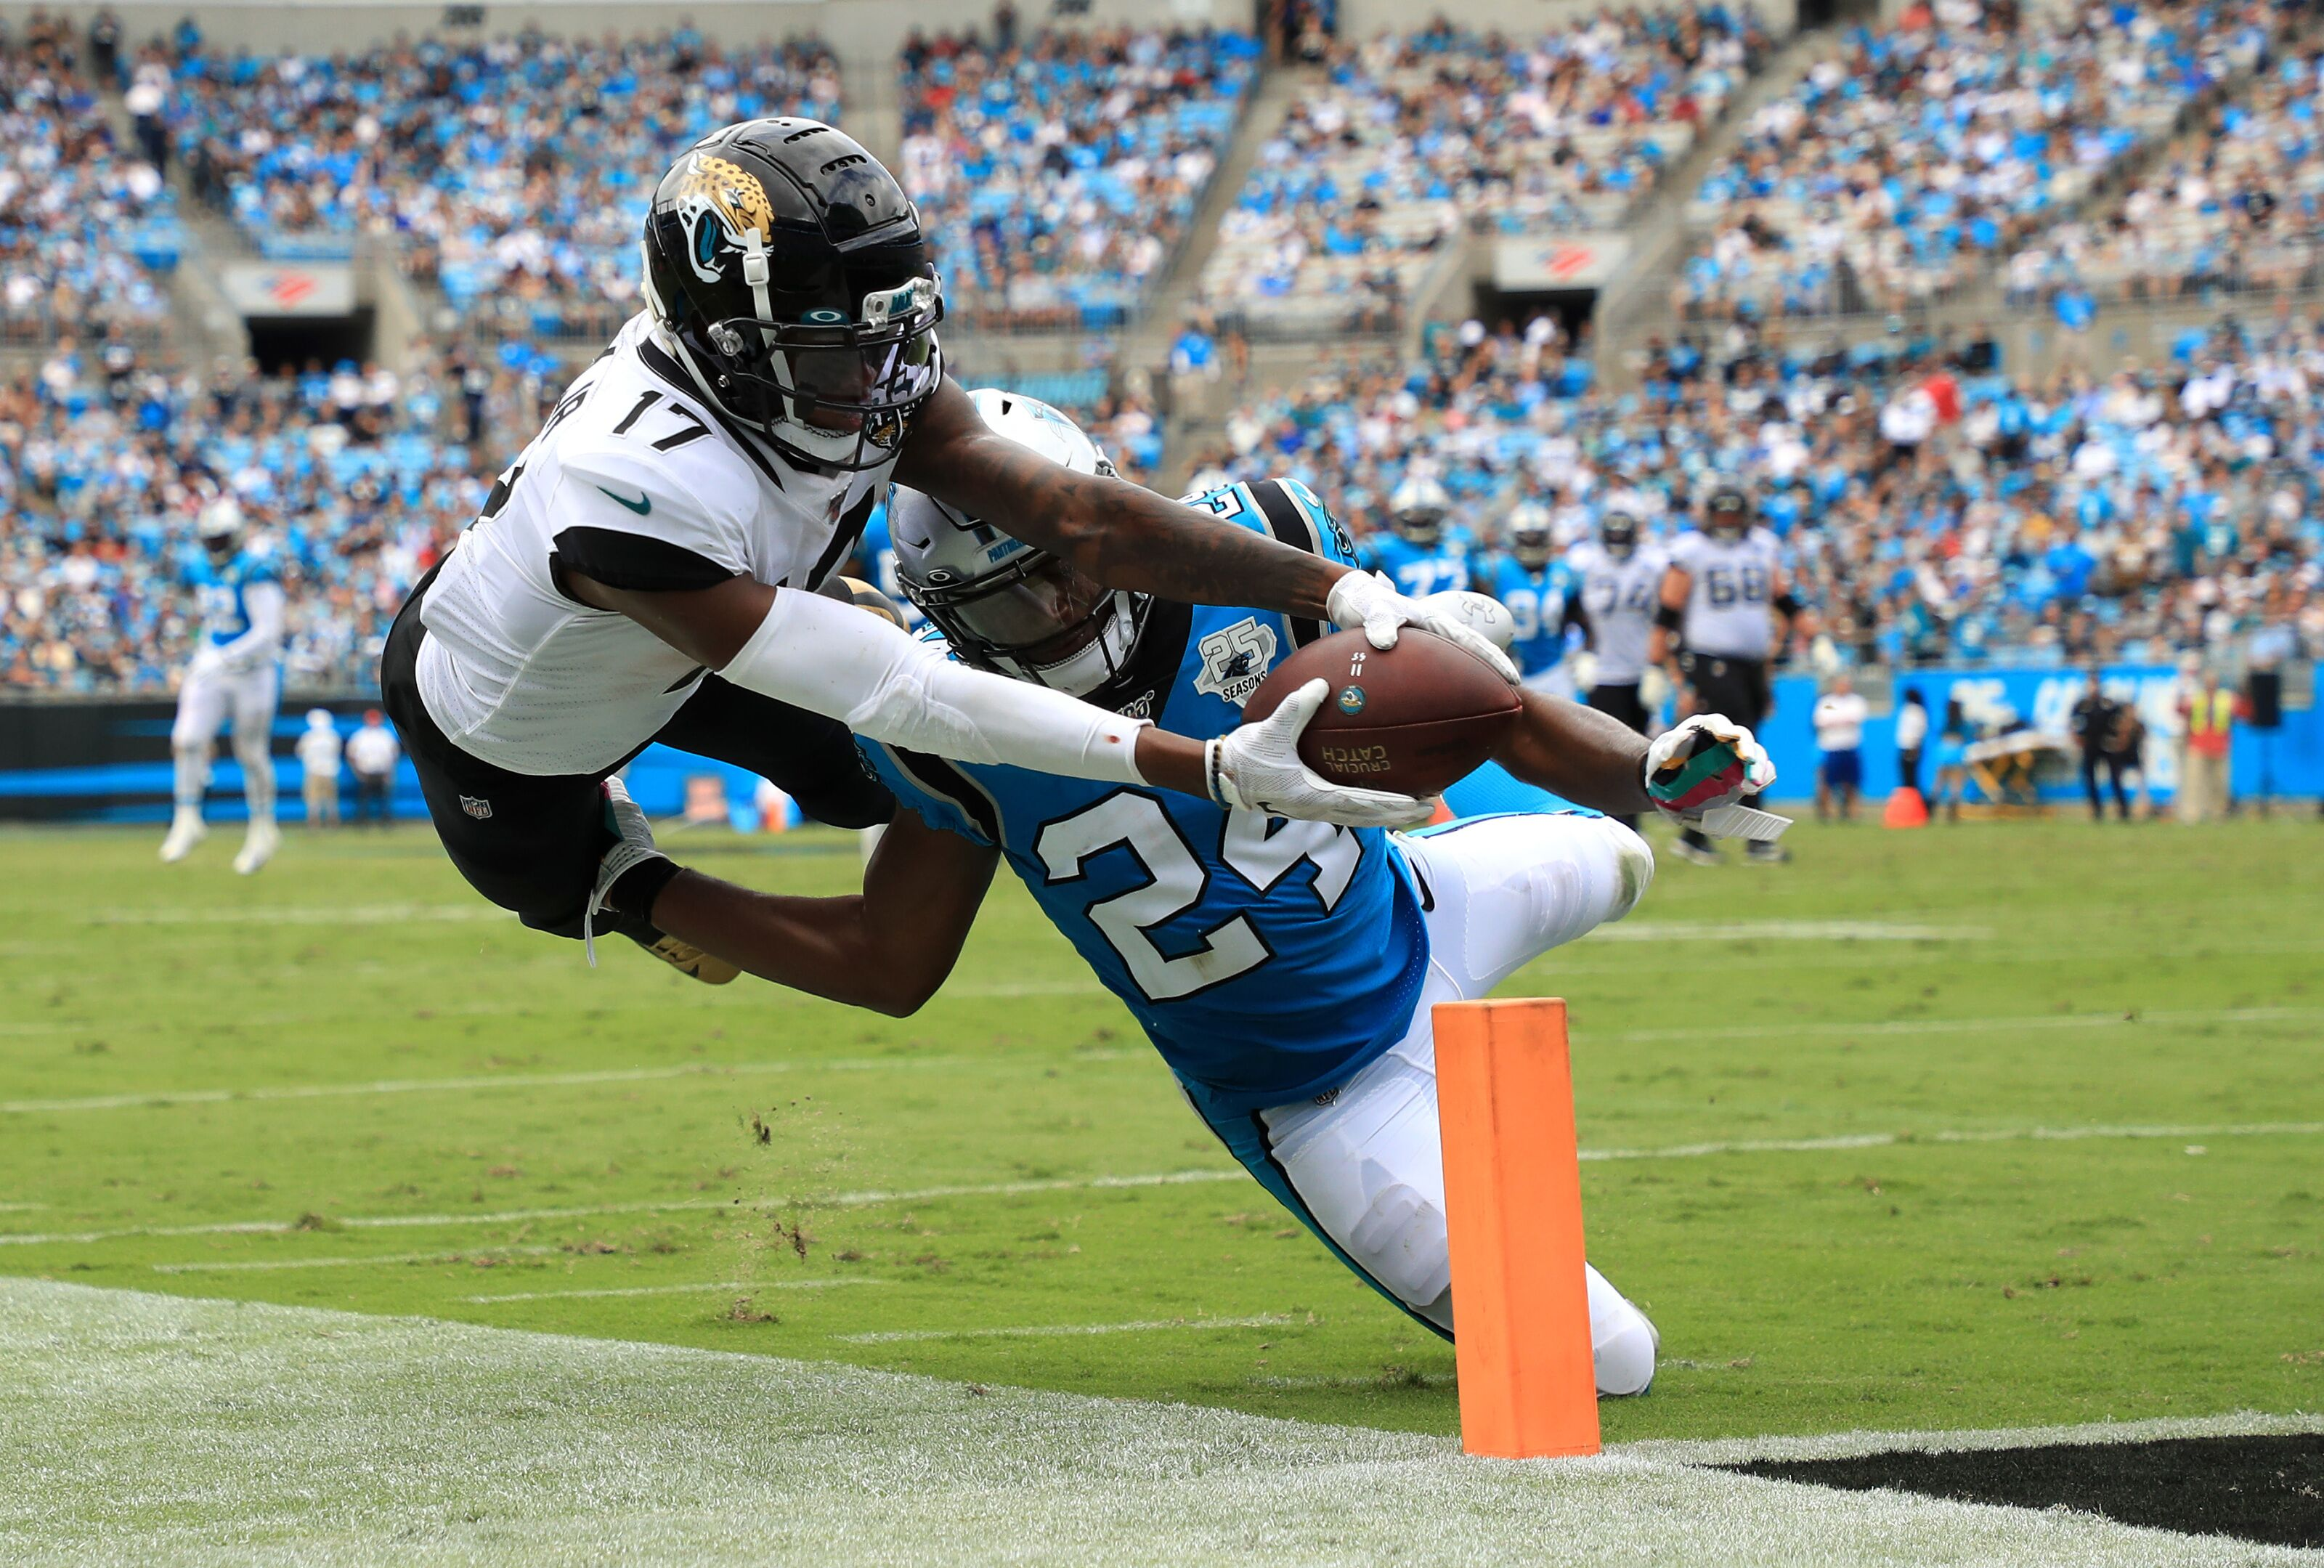 Jaguars take on the Saints: 4 Players to Watch